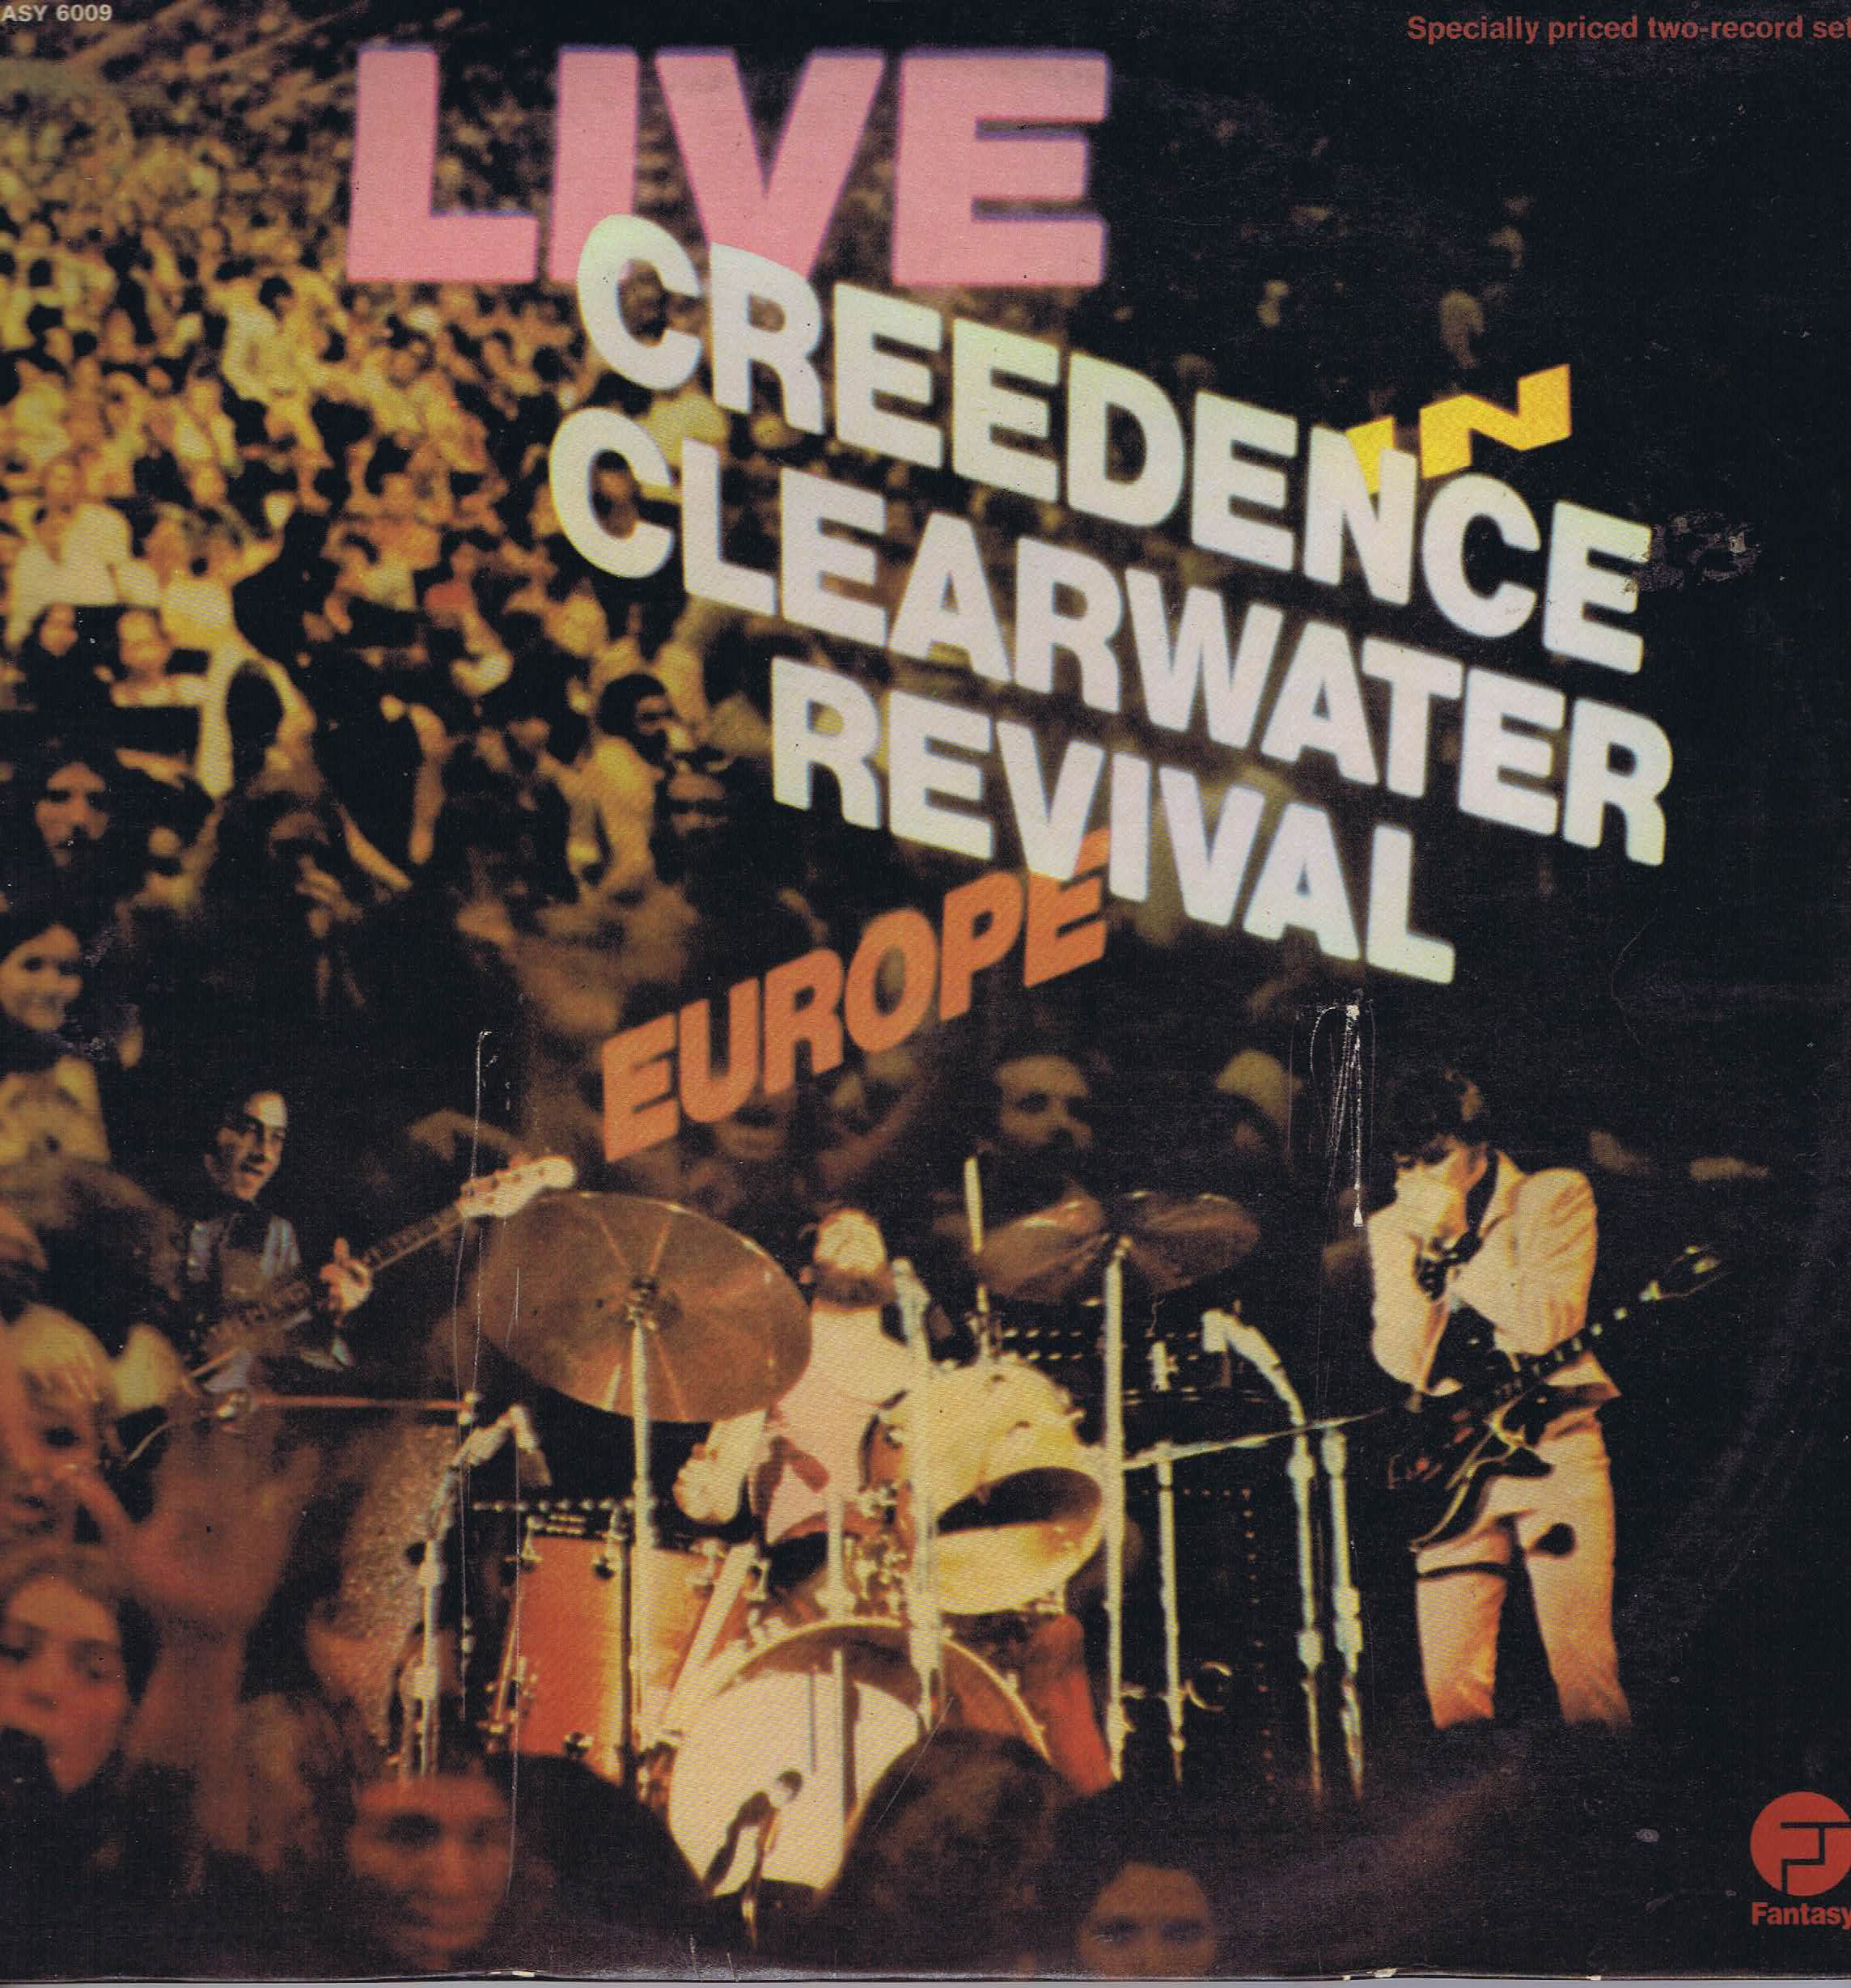 Creedence Clearwater Revival - Live In Europe - 6009 - 2-LP Vinyl Record